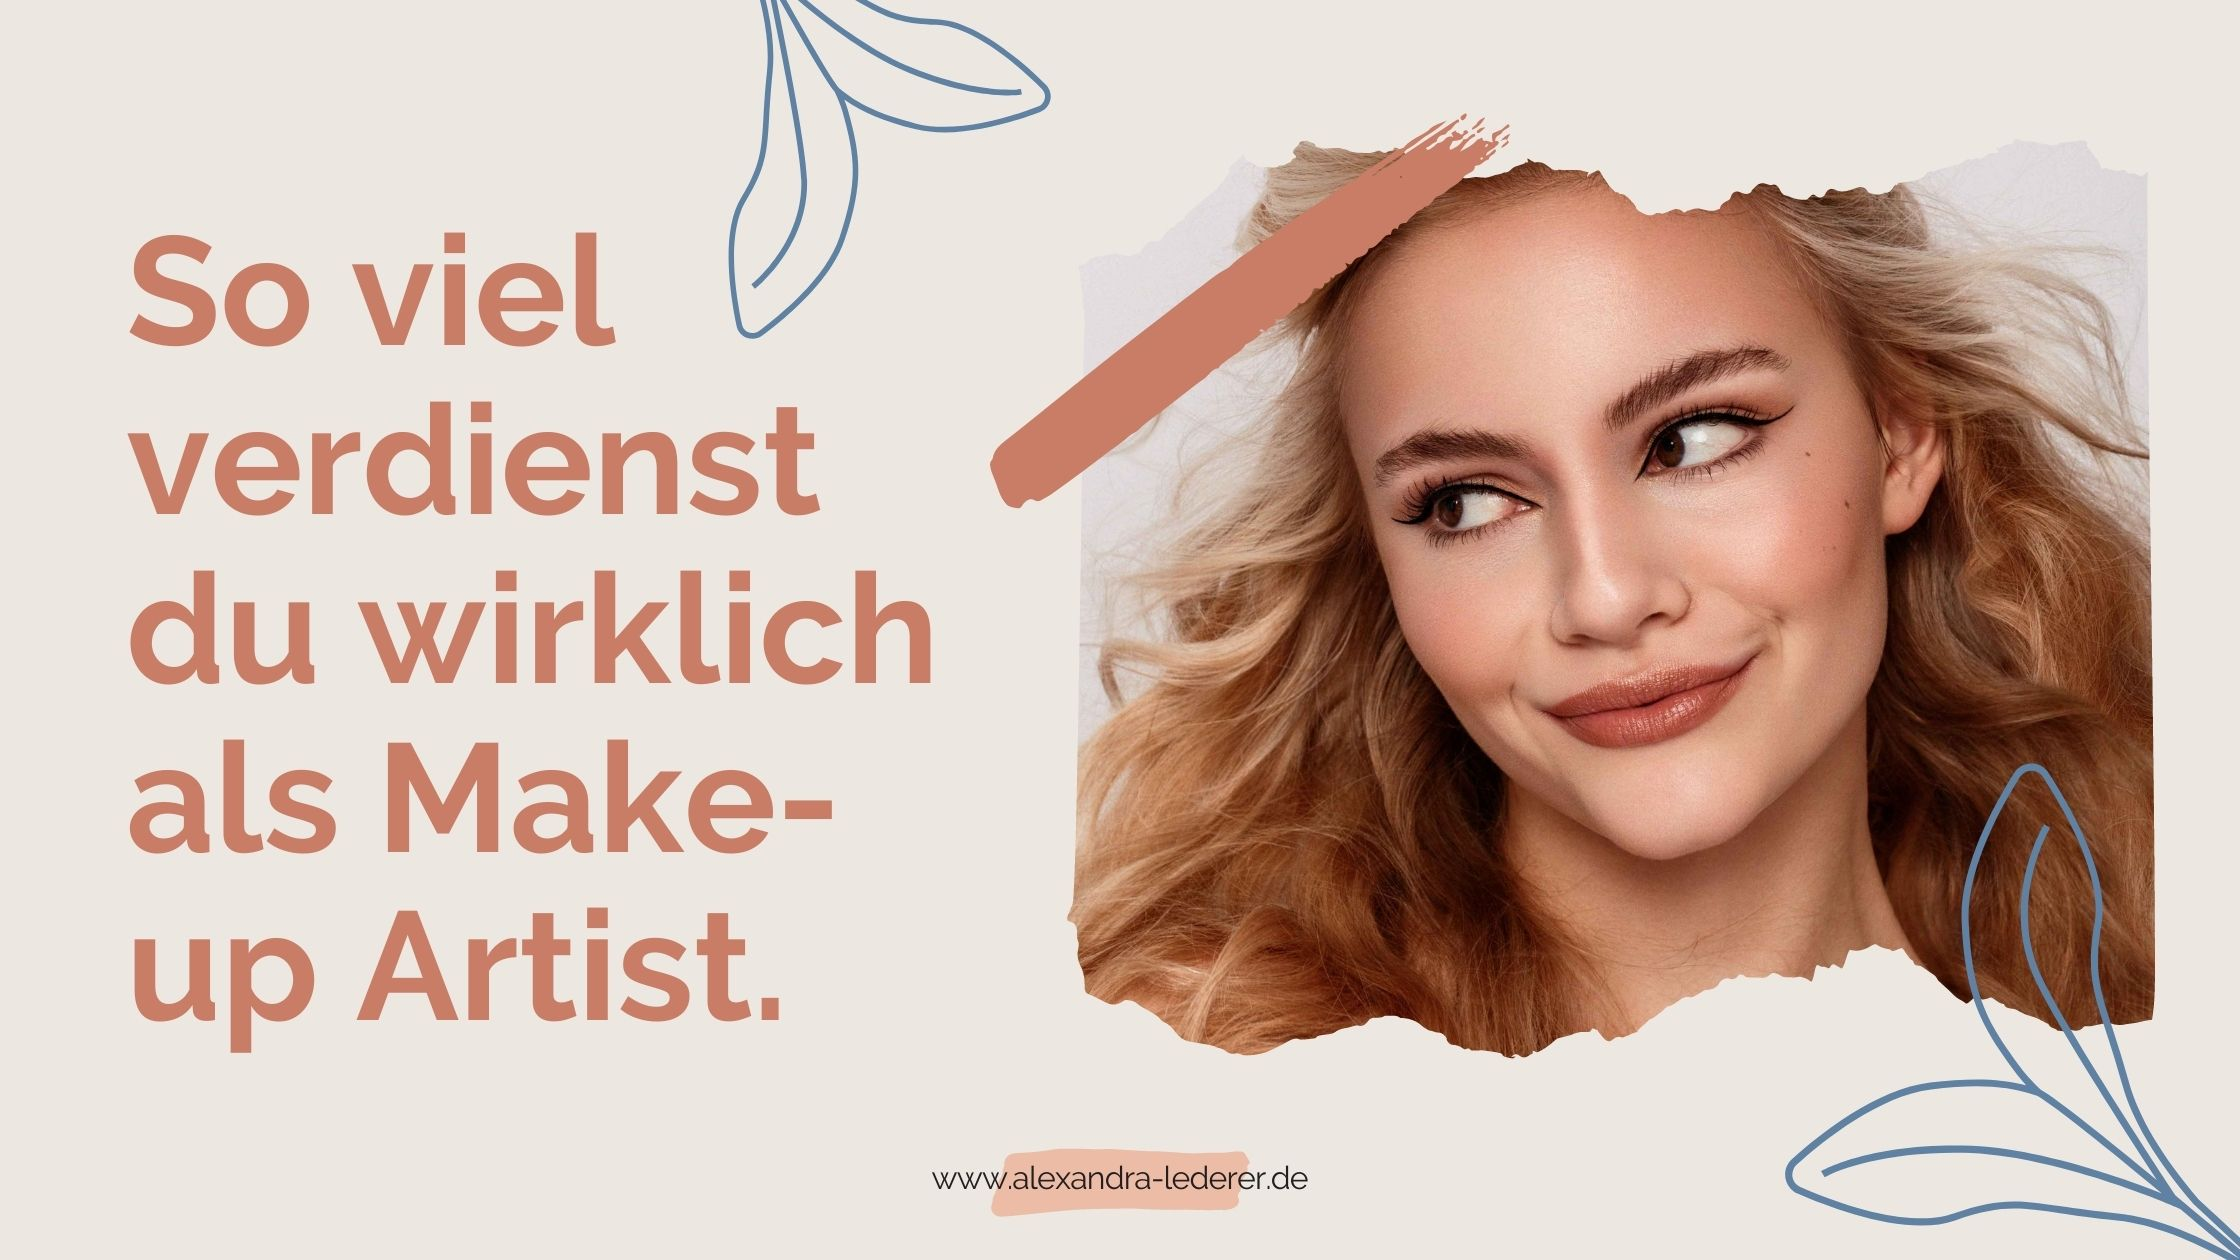 Make-up Artist Gehalt